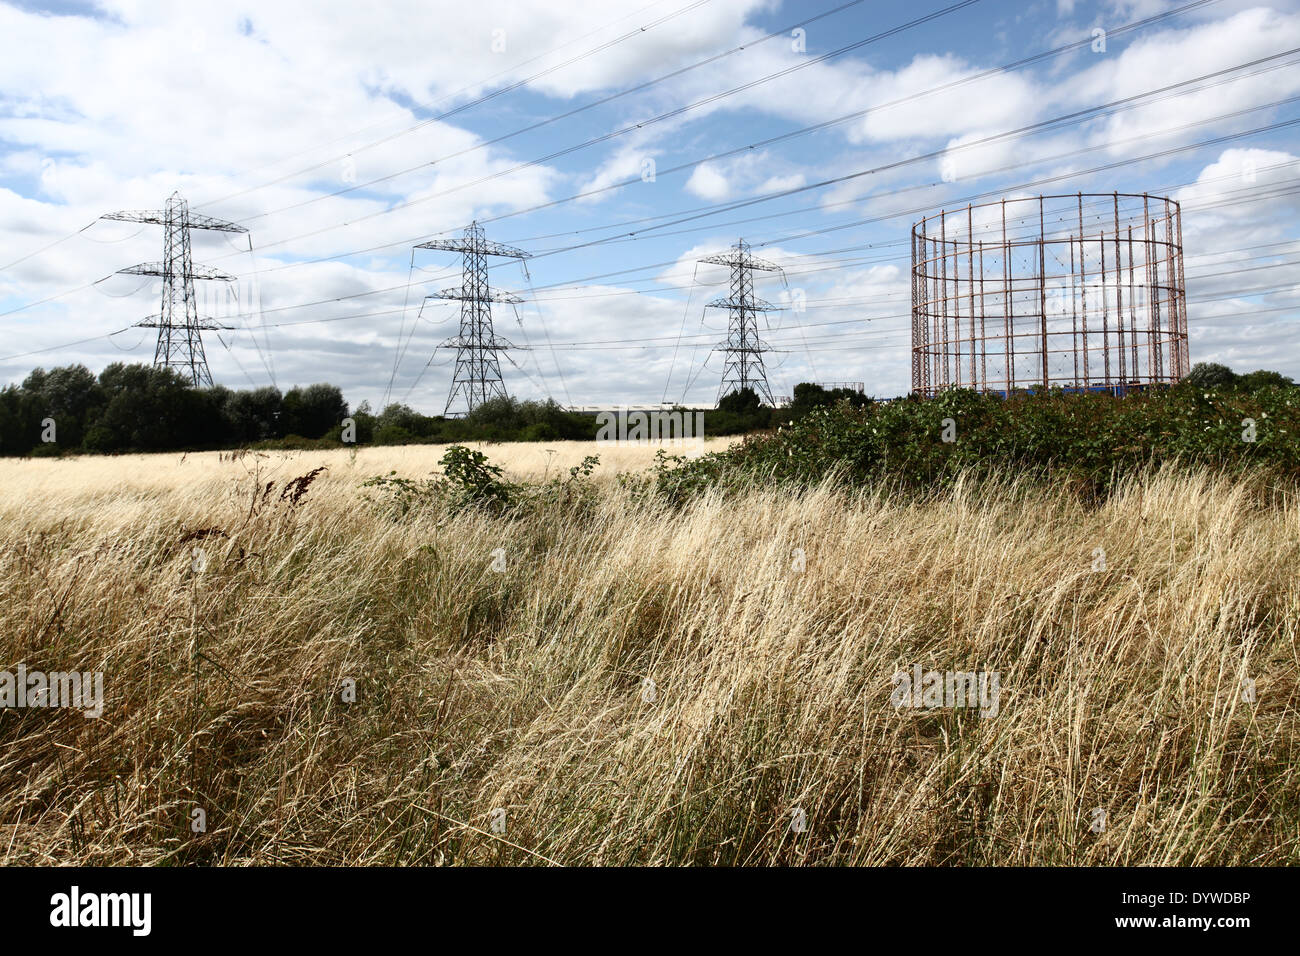 Tottenham Marches and transmission towers in the background - Stock Image